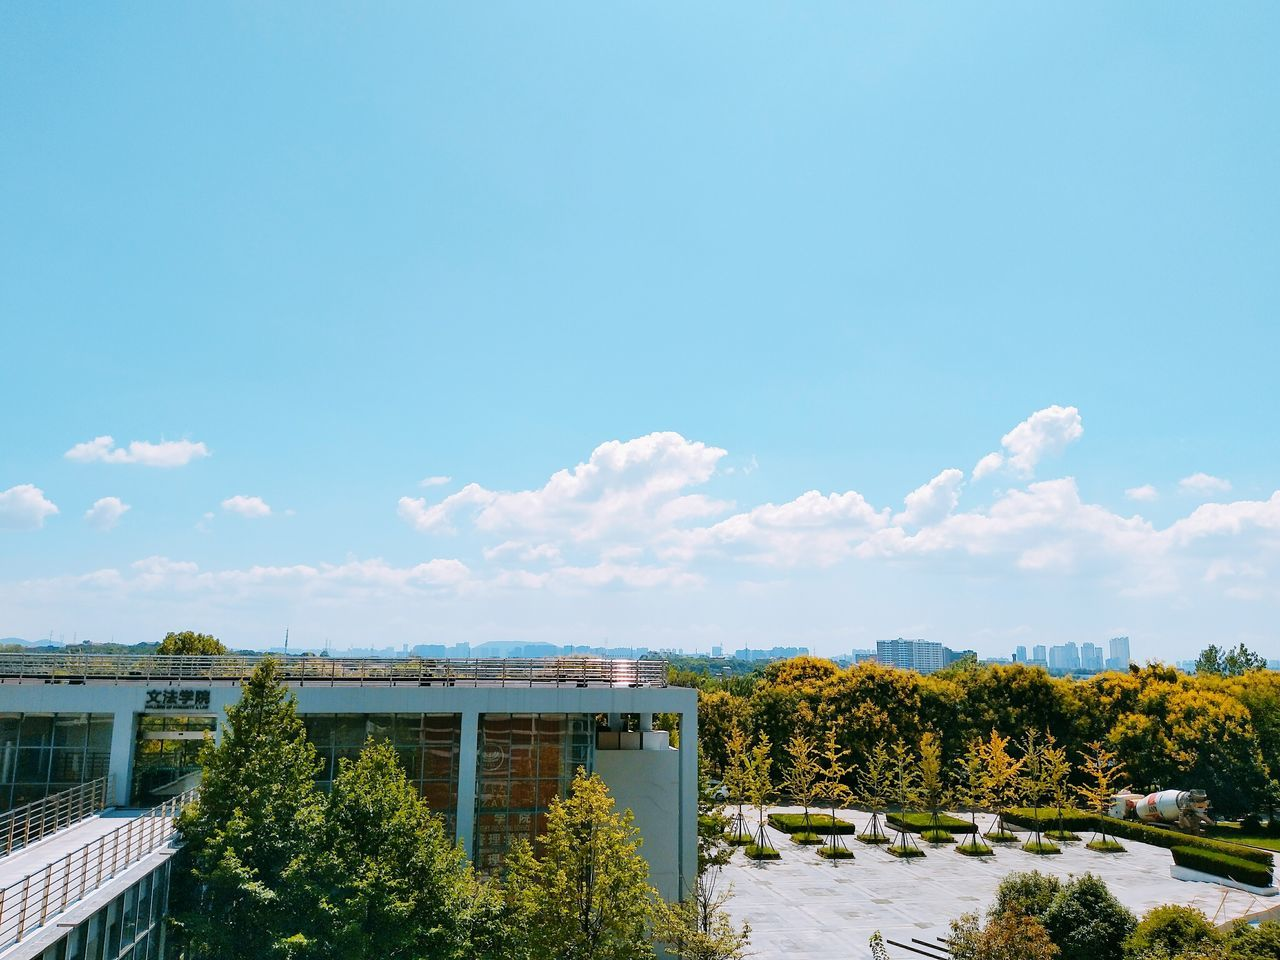 Sky Outdoors Day No People Blue Nature Wuhan,China Summer Holidays Beautiful Day China Summertime School Life  Some Trees